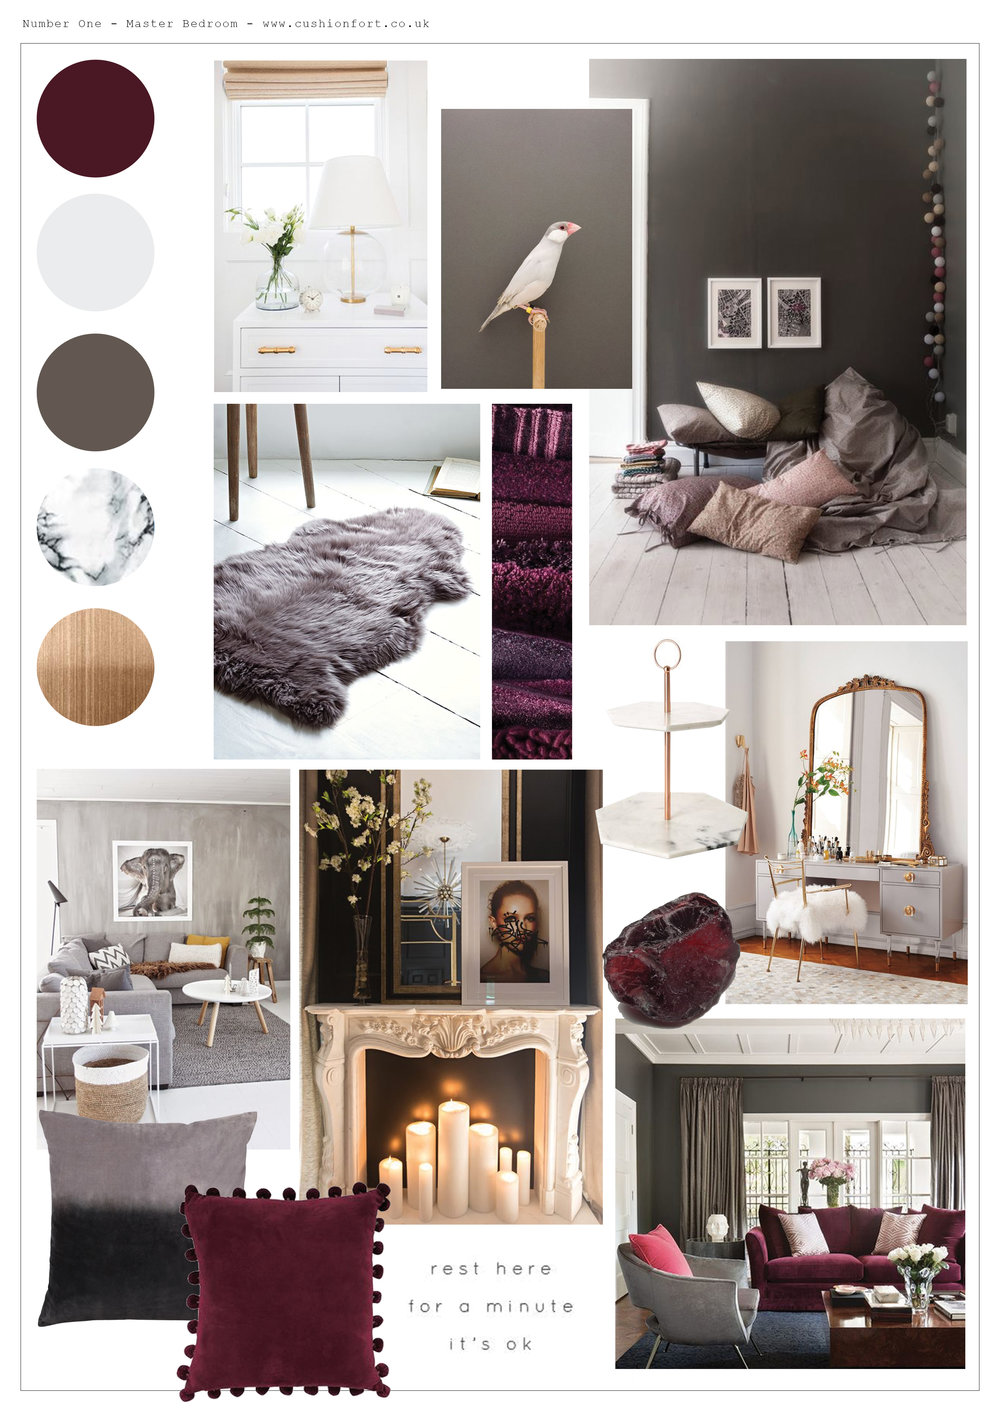 Bedroom_Moodboard_Renovation